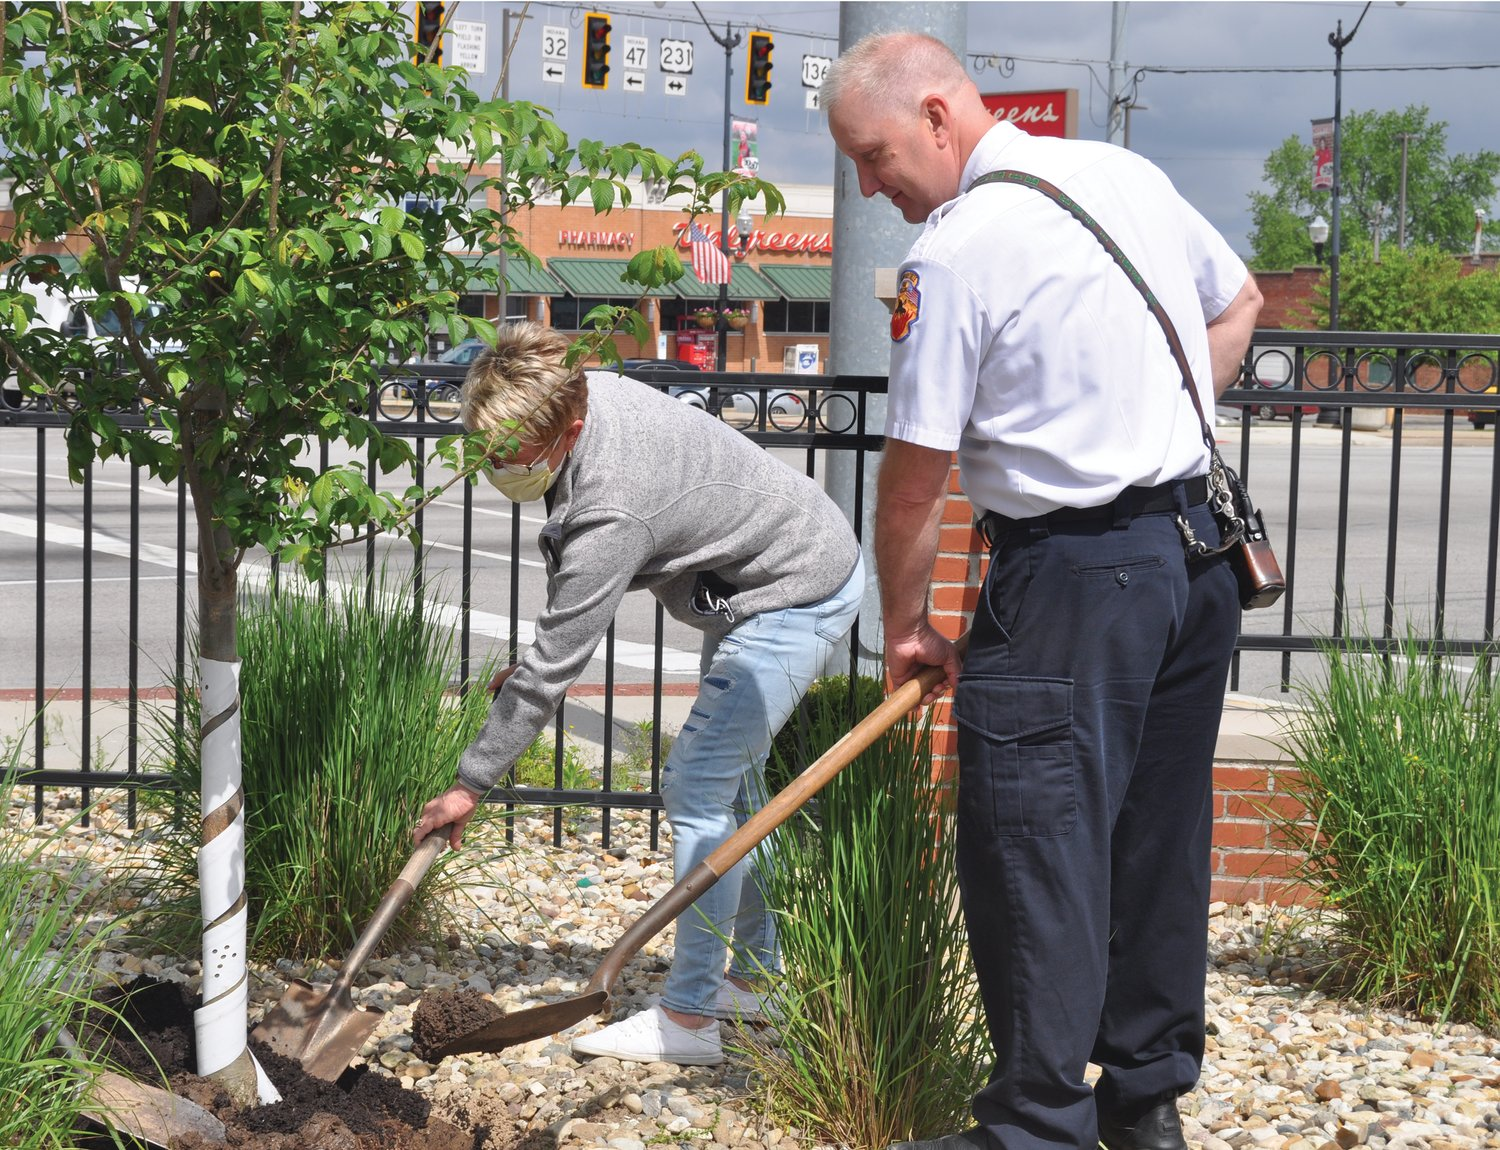 Amber Reed, left, Montgomery County Health Department administrator, and Scott Busenbark, Crawfordsville fire chief, shovel dirt around a Patriot Elm Tree Friday in the Montgomery County Courthouse parking lot. The tree was dedicated to front-line workers in the COVID-19 pandemic by Crawfordsville Main Street.